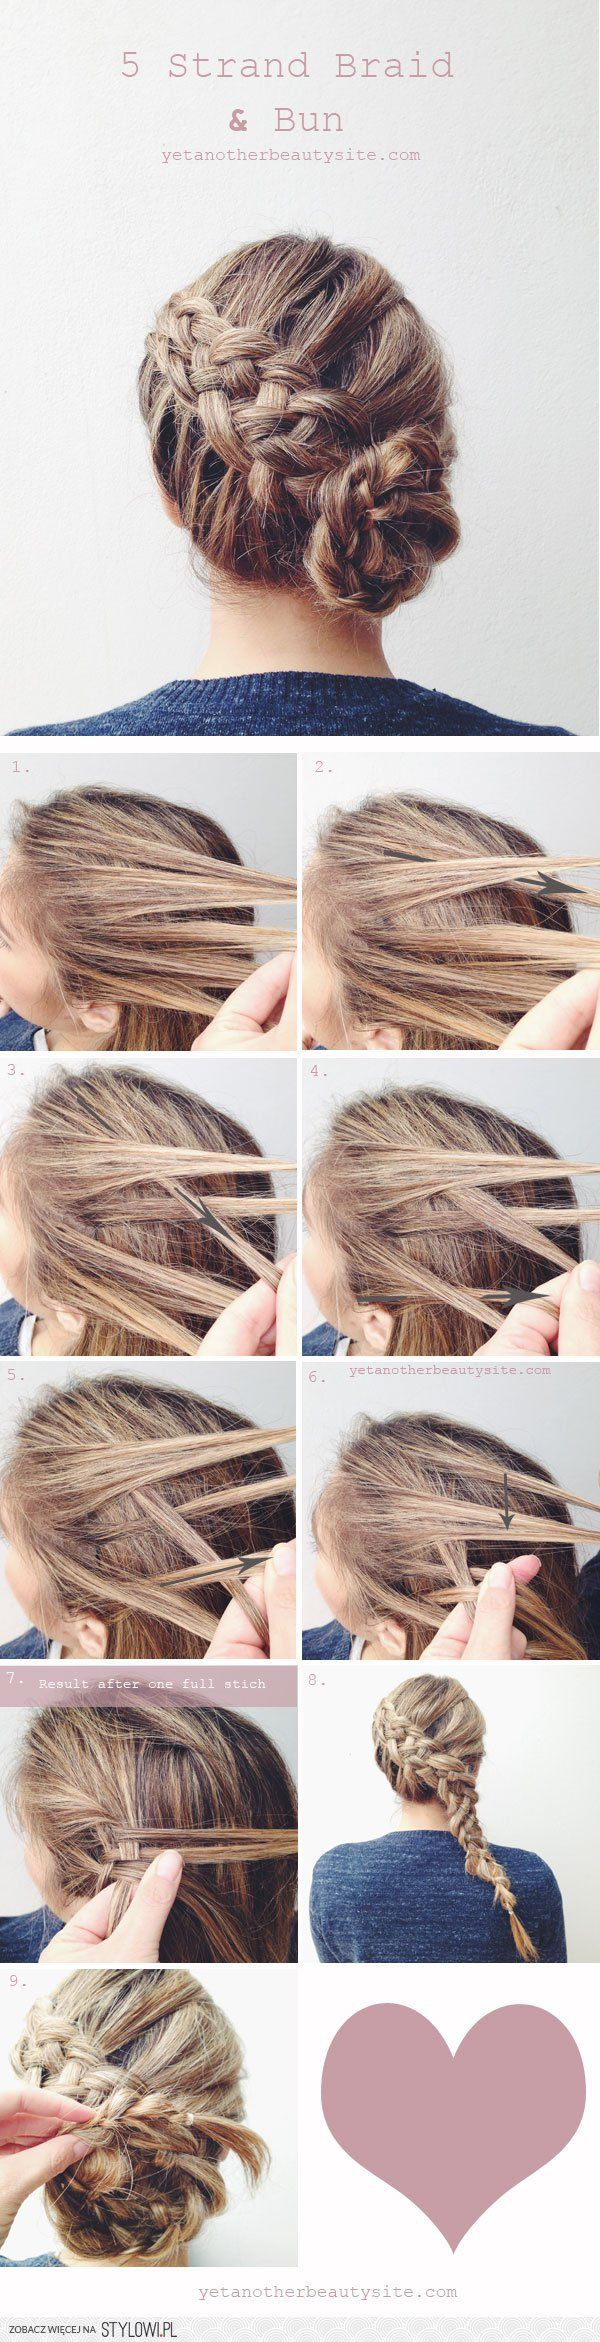 5 strand braid & bun hairstyle | beauty site na Stylowi.pl